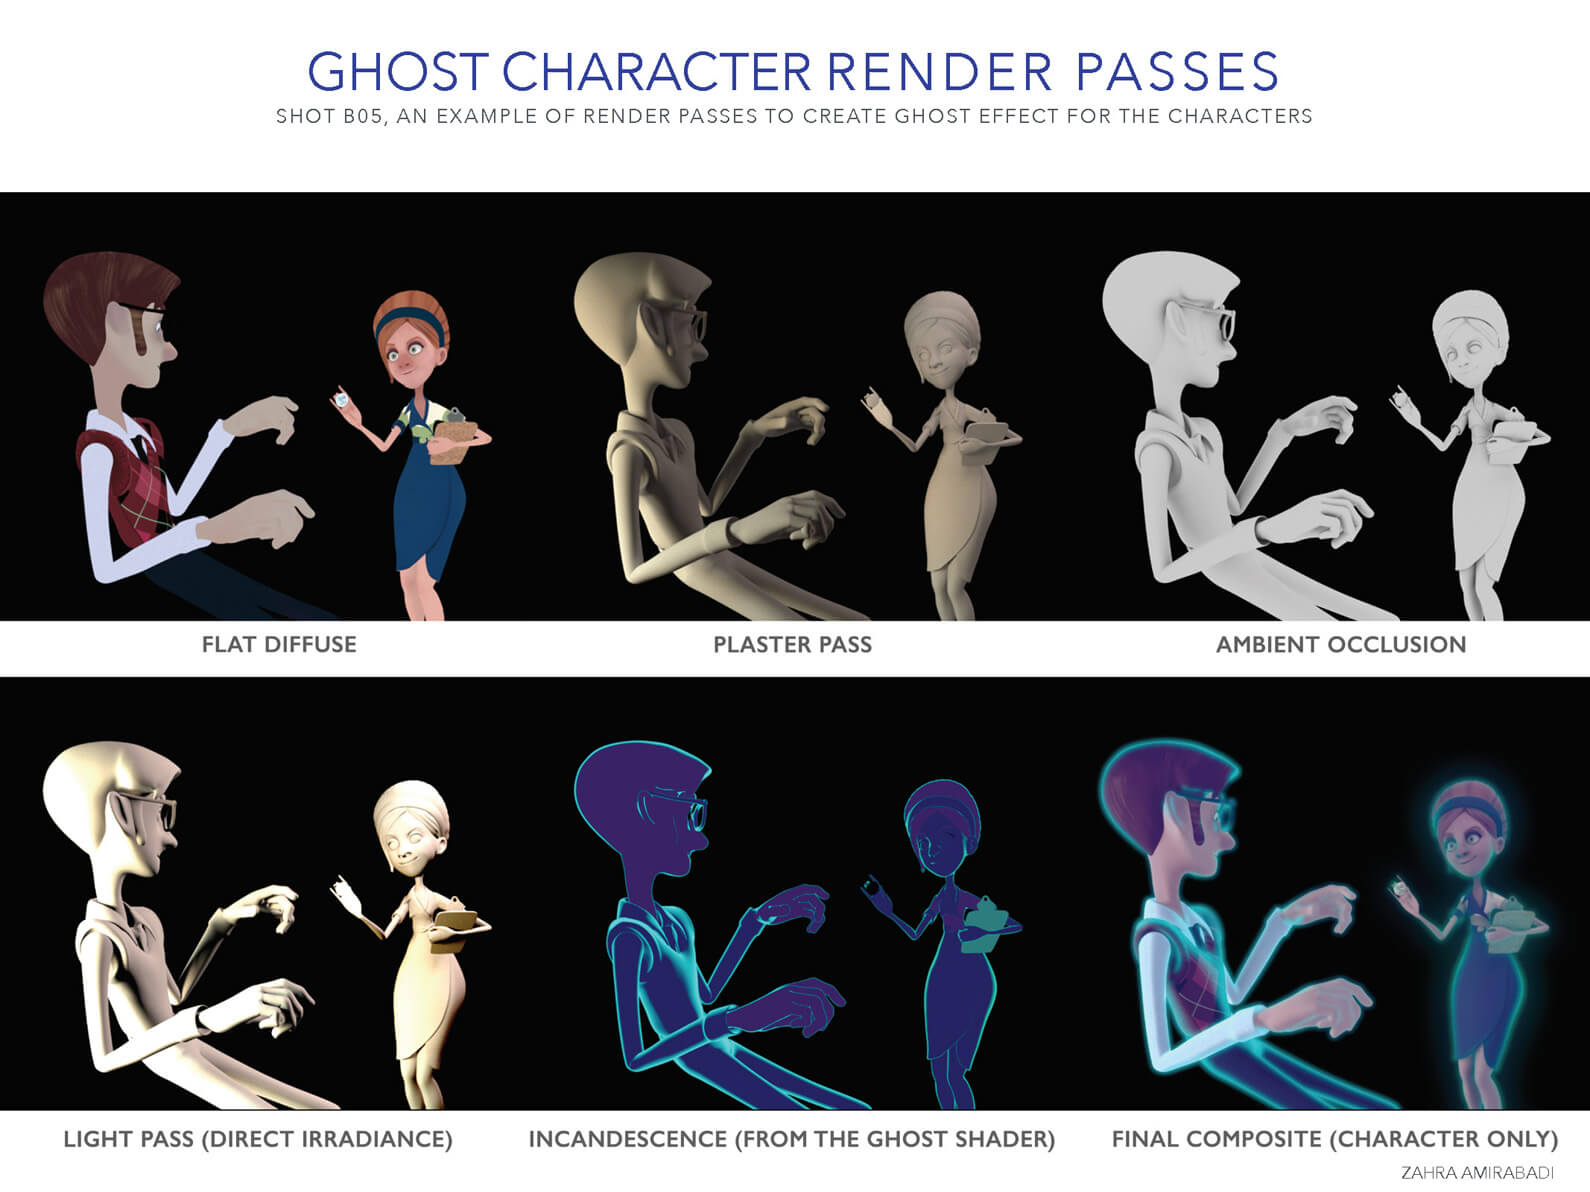 Various stages of rendering passes of the man and woman ghosts in Orientation center for the Unseen